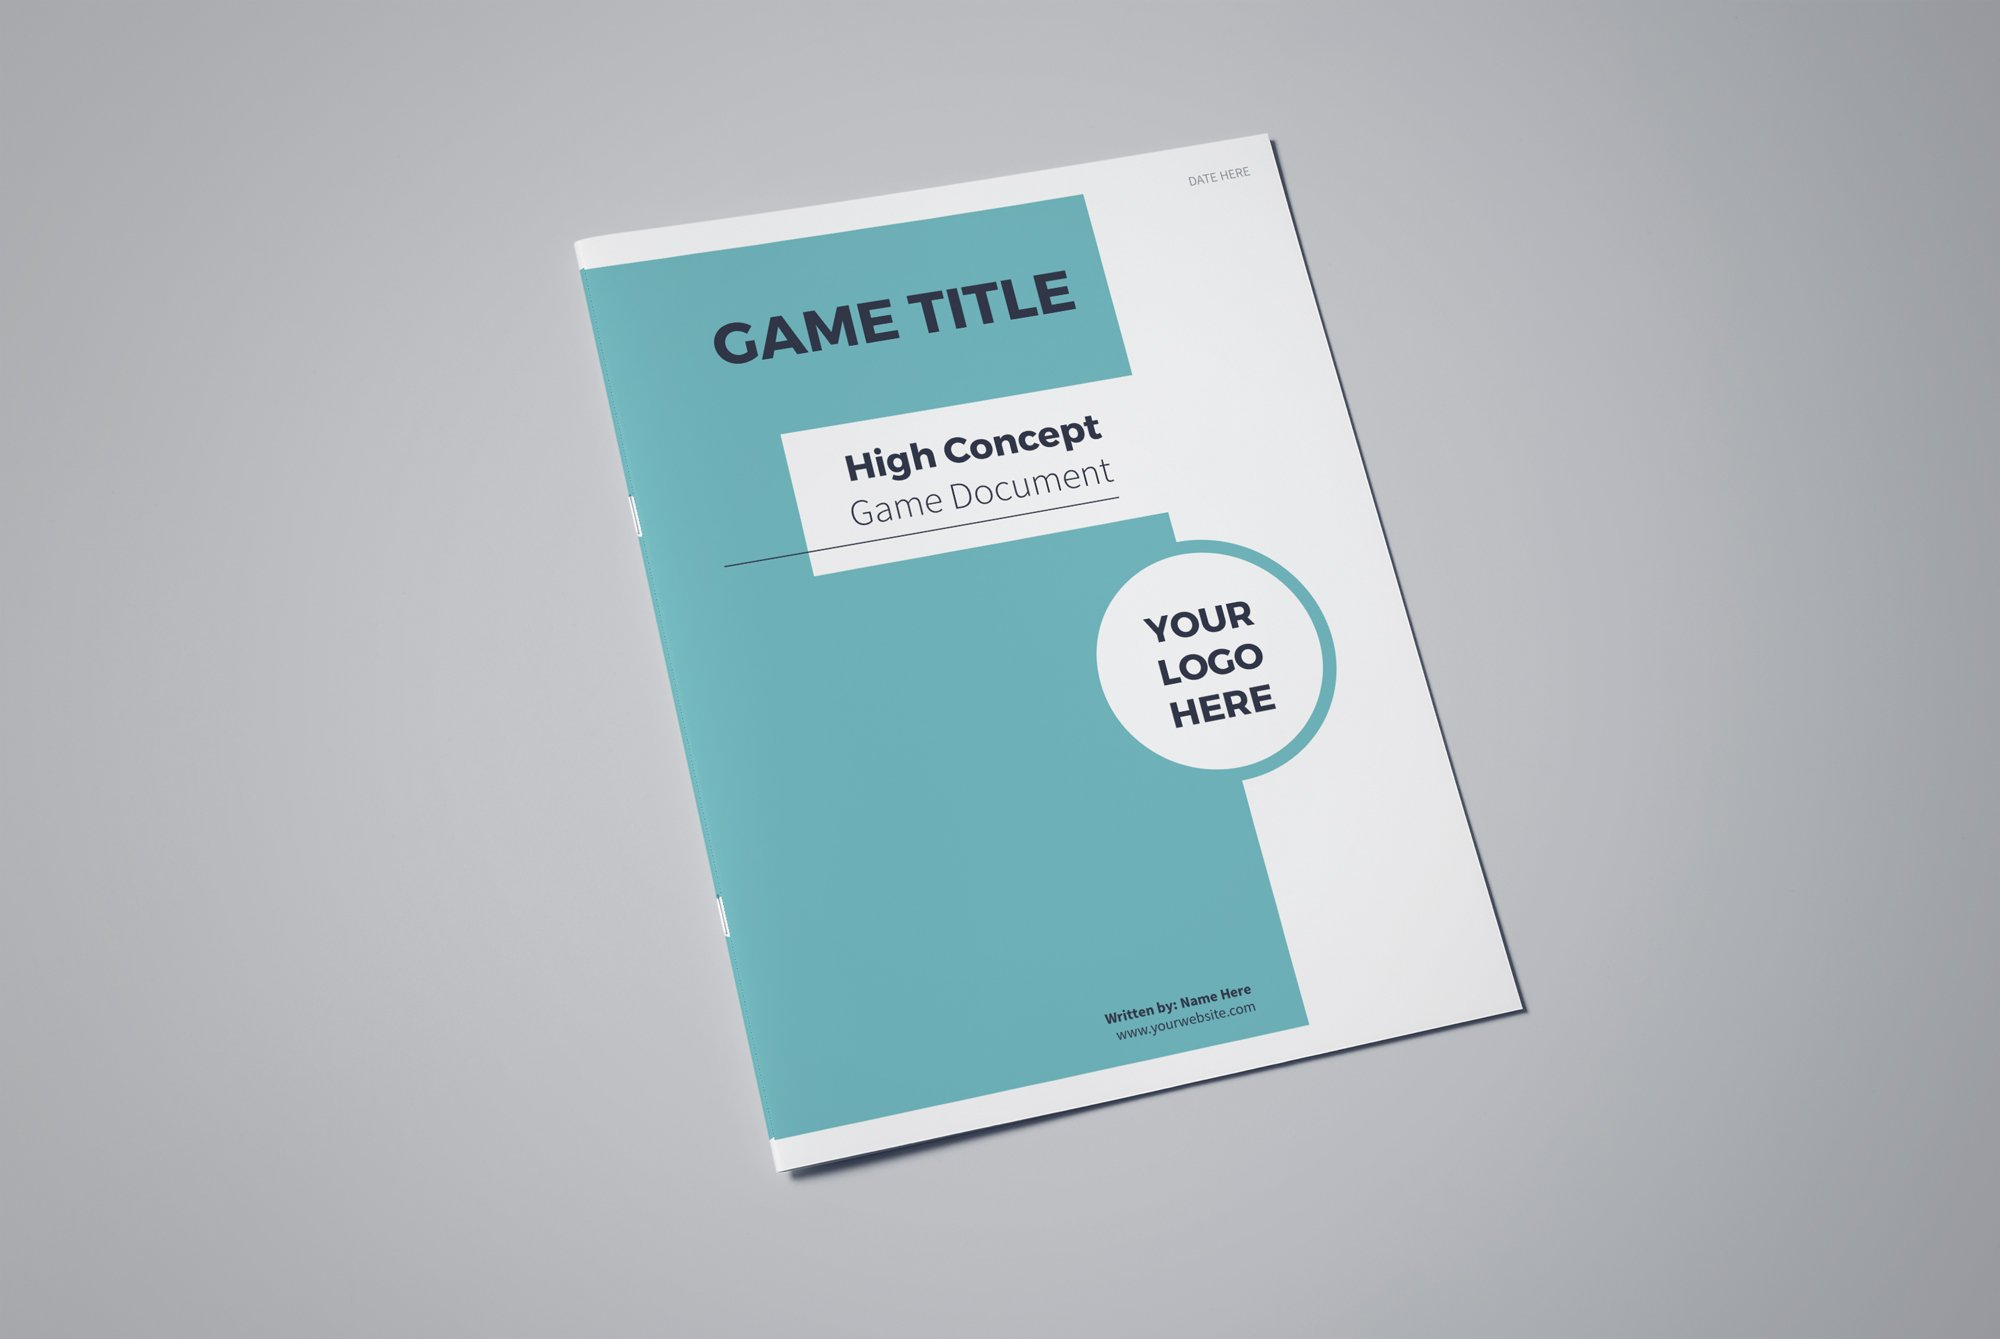 High concept game document template brochure templates creative high concept game document template brochure templates creative market maxwellsz